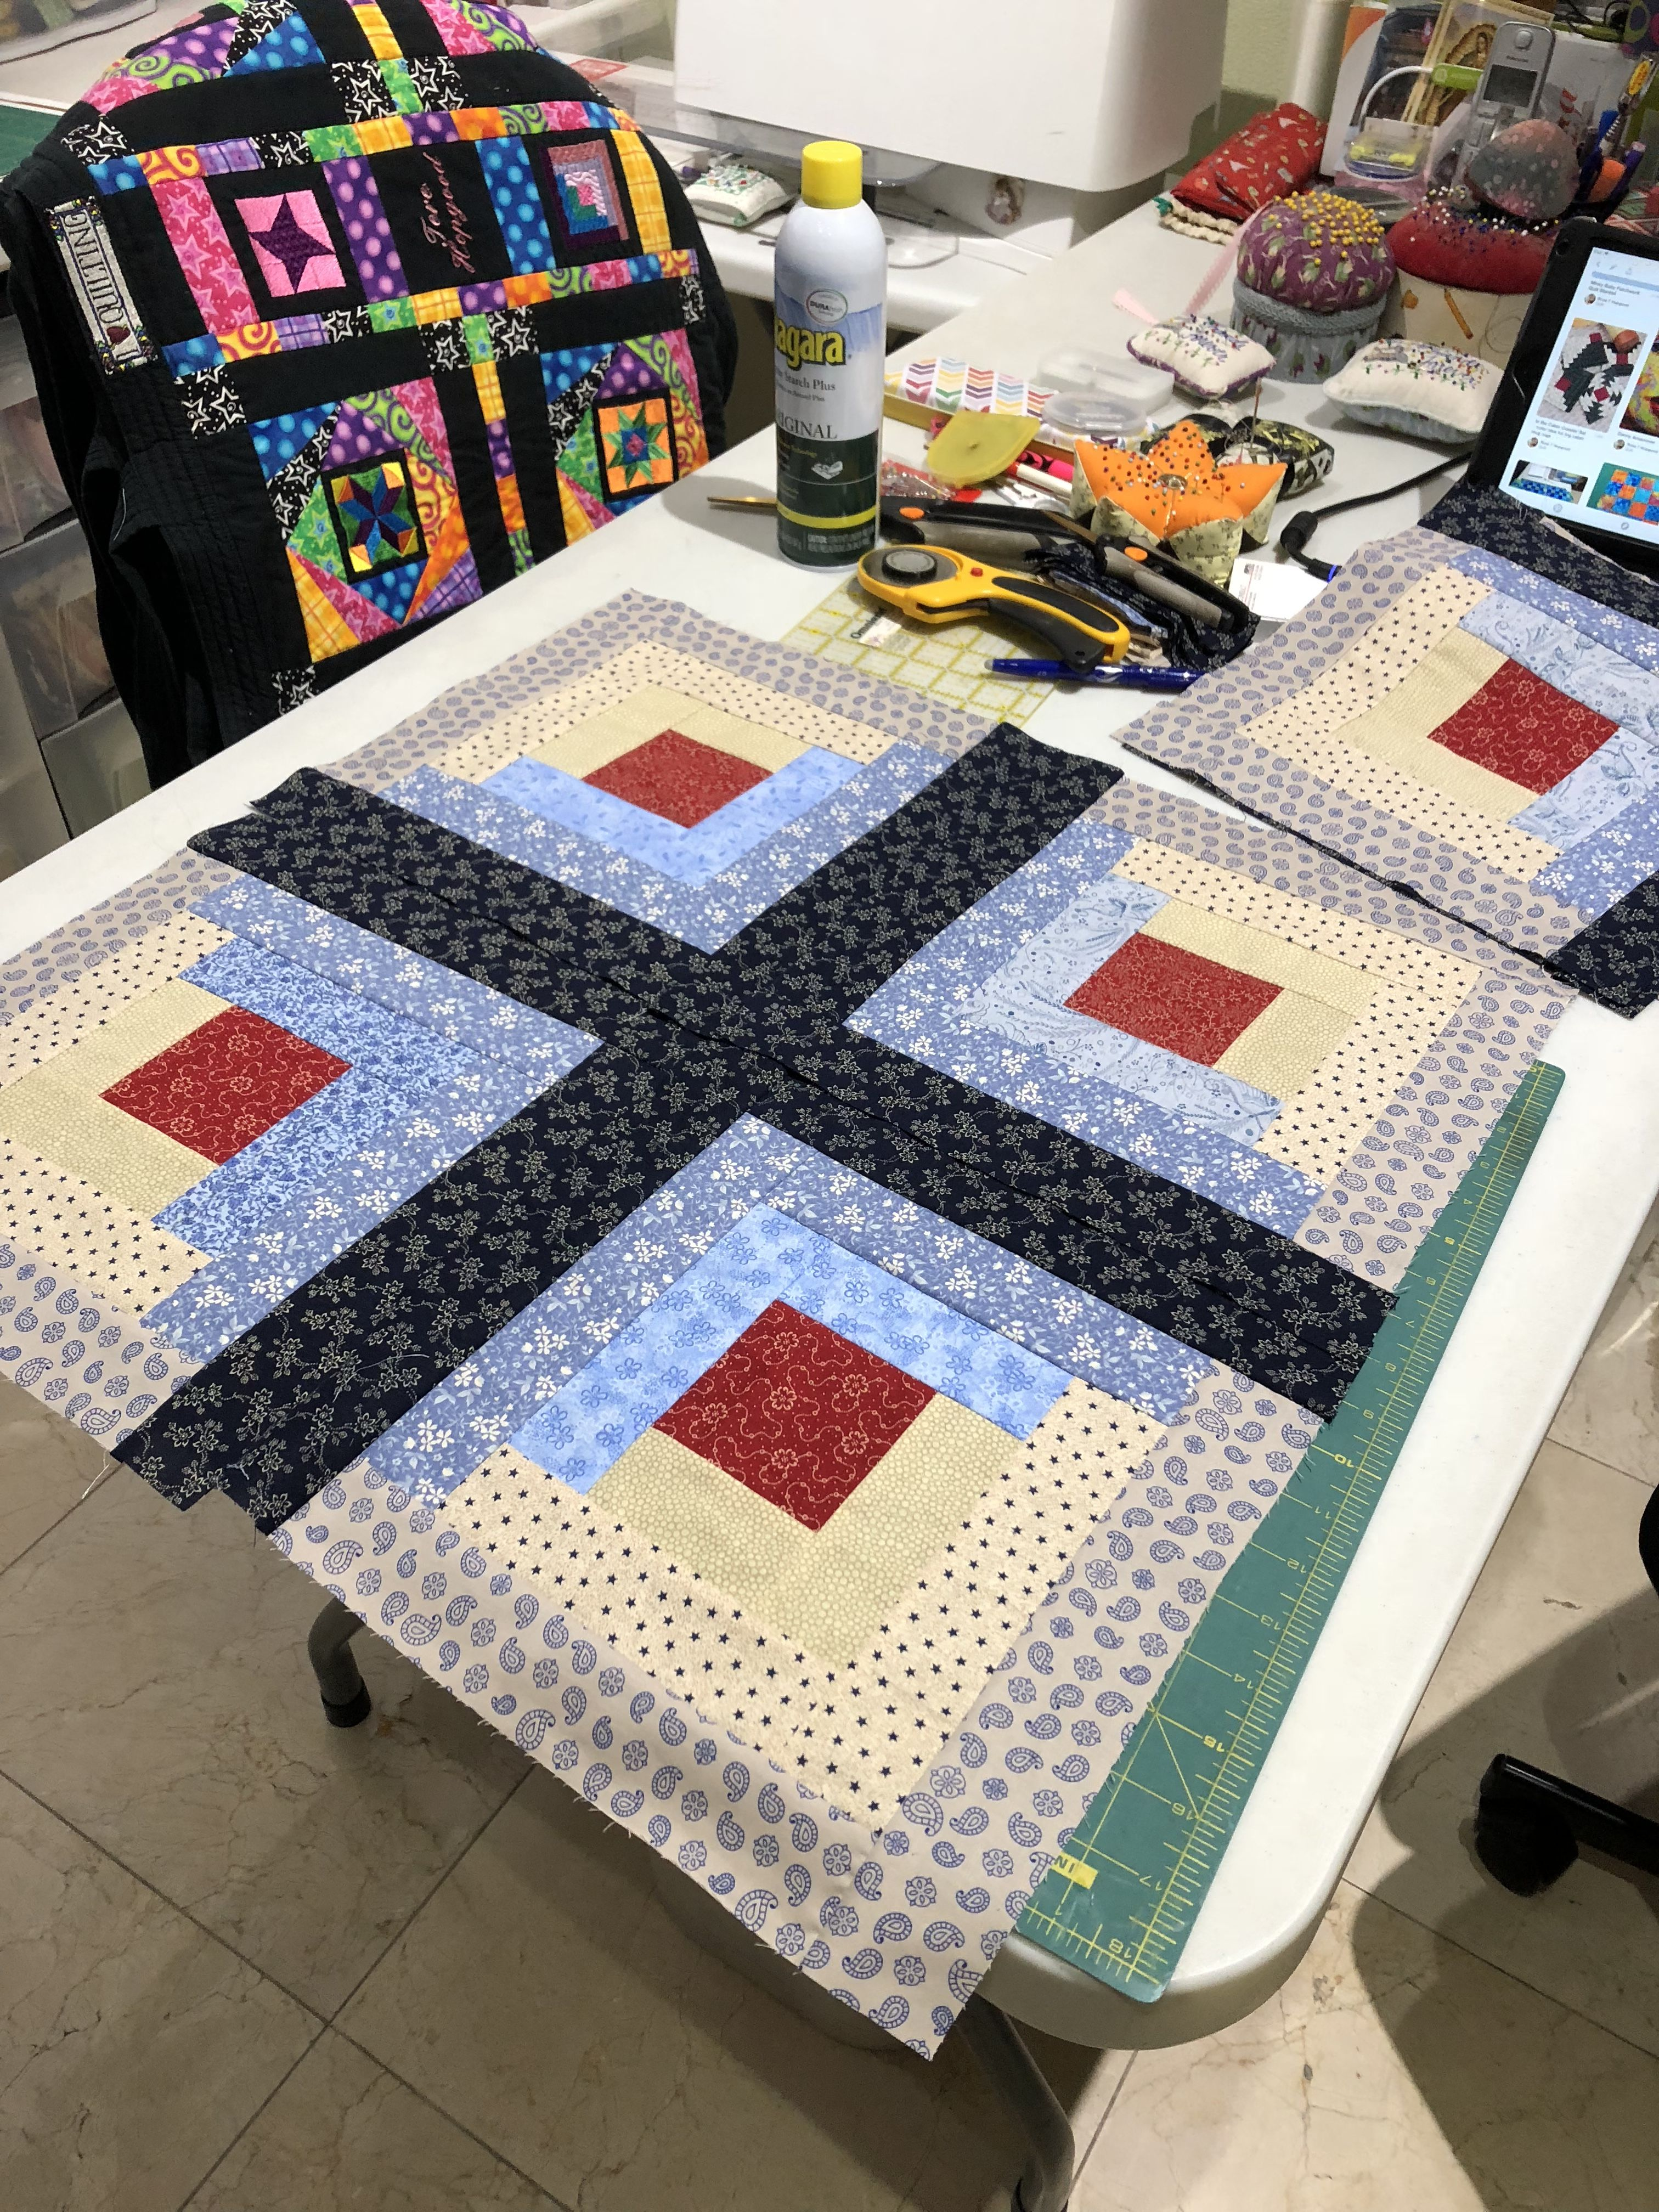 Pin By Rosa T Hopgood On Quilt